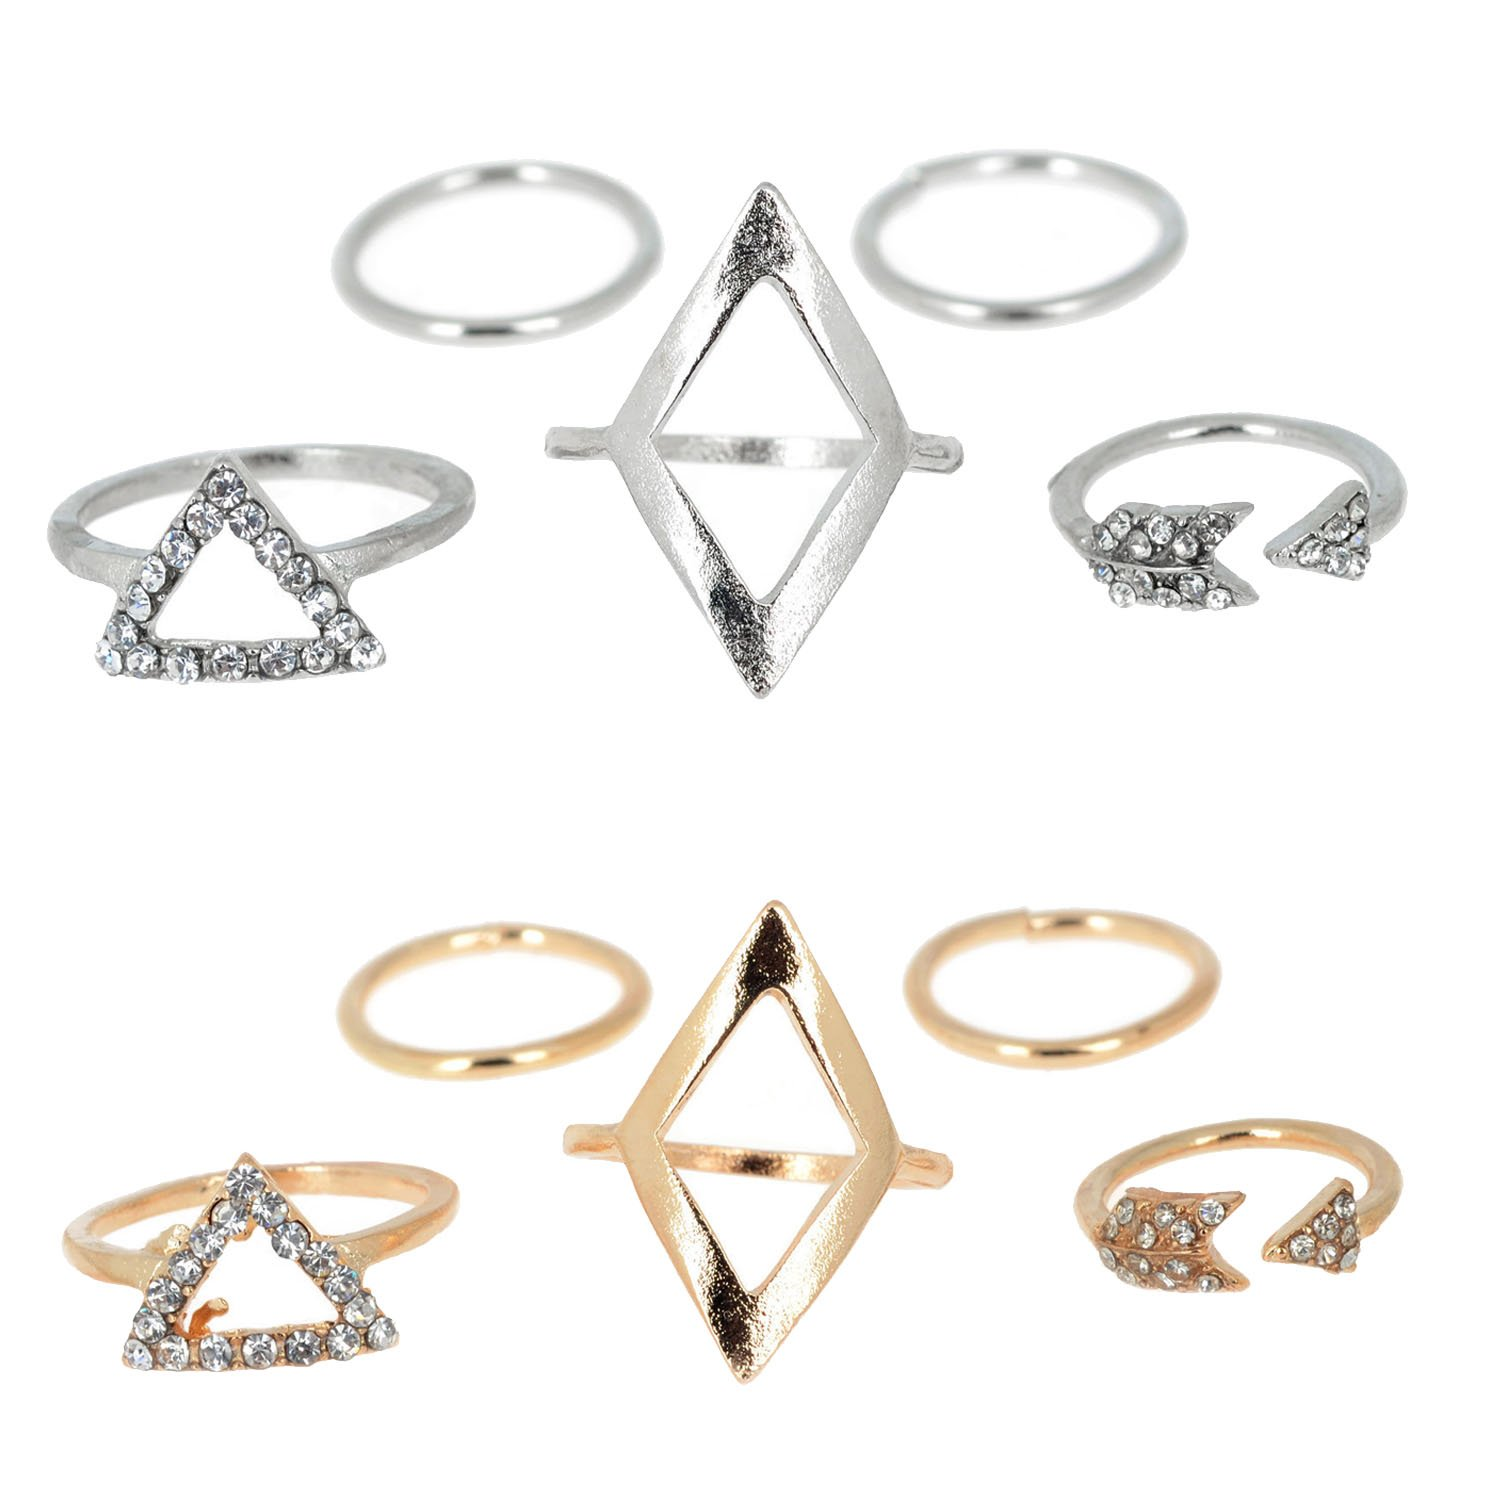 10Pcs Fashion Women Ring Retro Bohemia Style Knuckle Ring for Wedding Party Fashion Show Prom Banquet Clothing Gosear